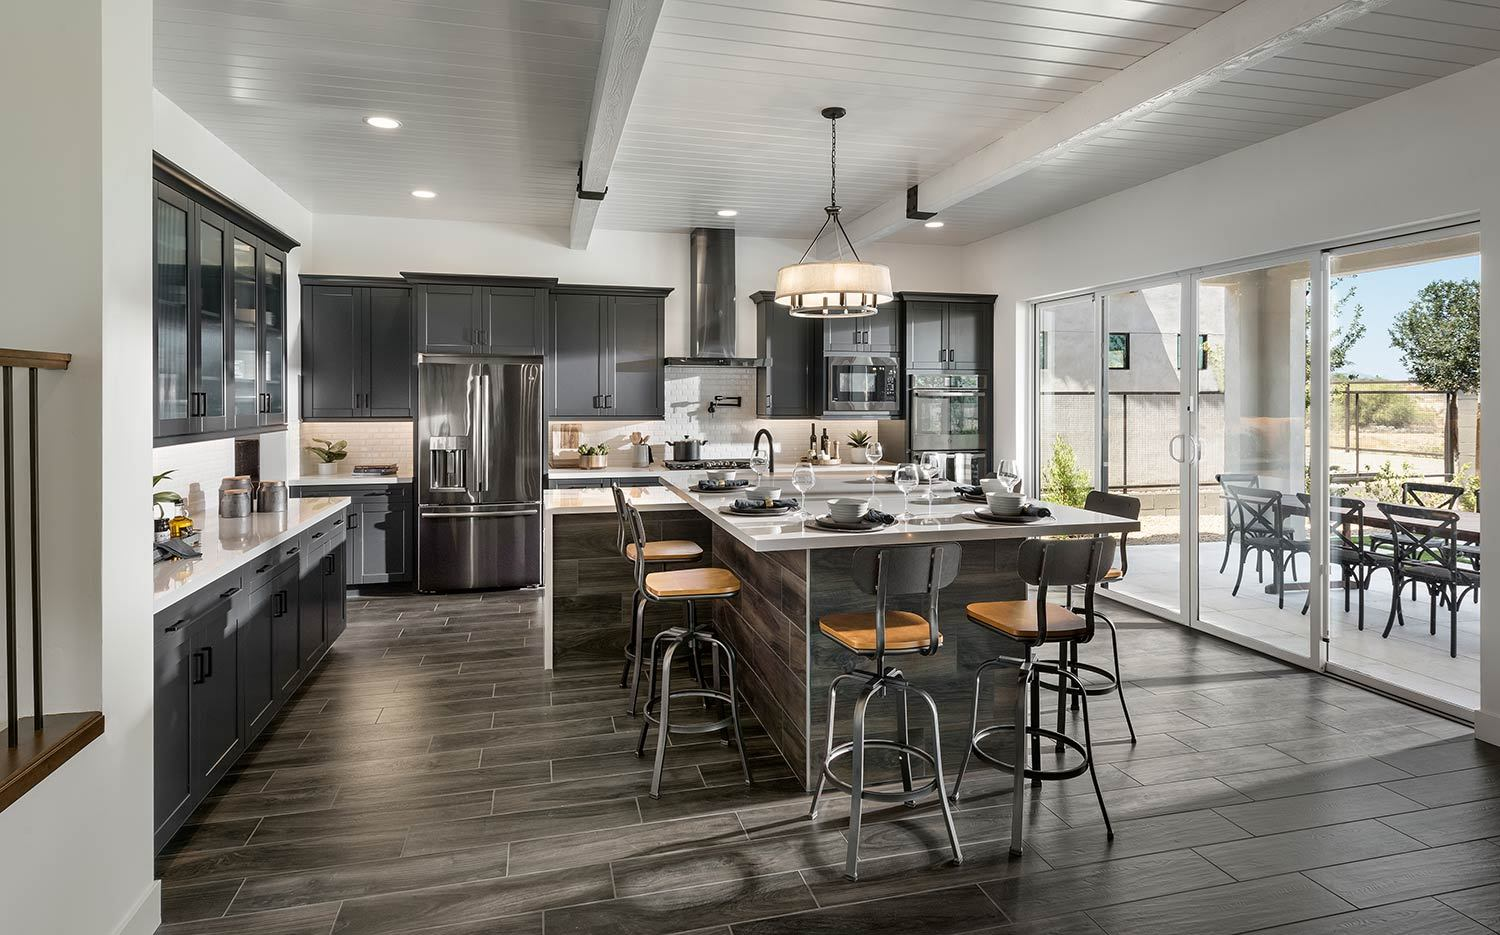 Kitchen featured in the Loma Plan 3 By Maracay Homes in Phoenix-Mesa, AZ